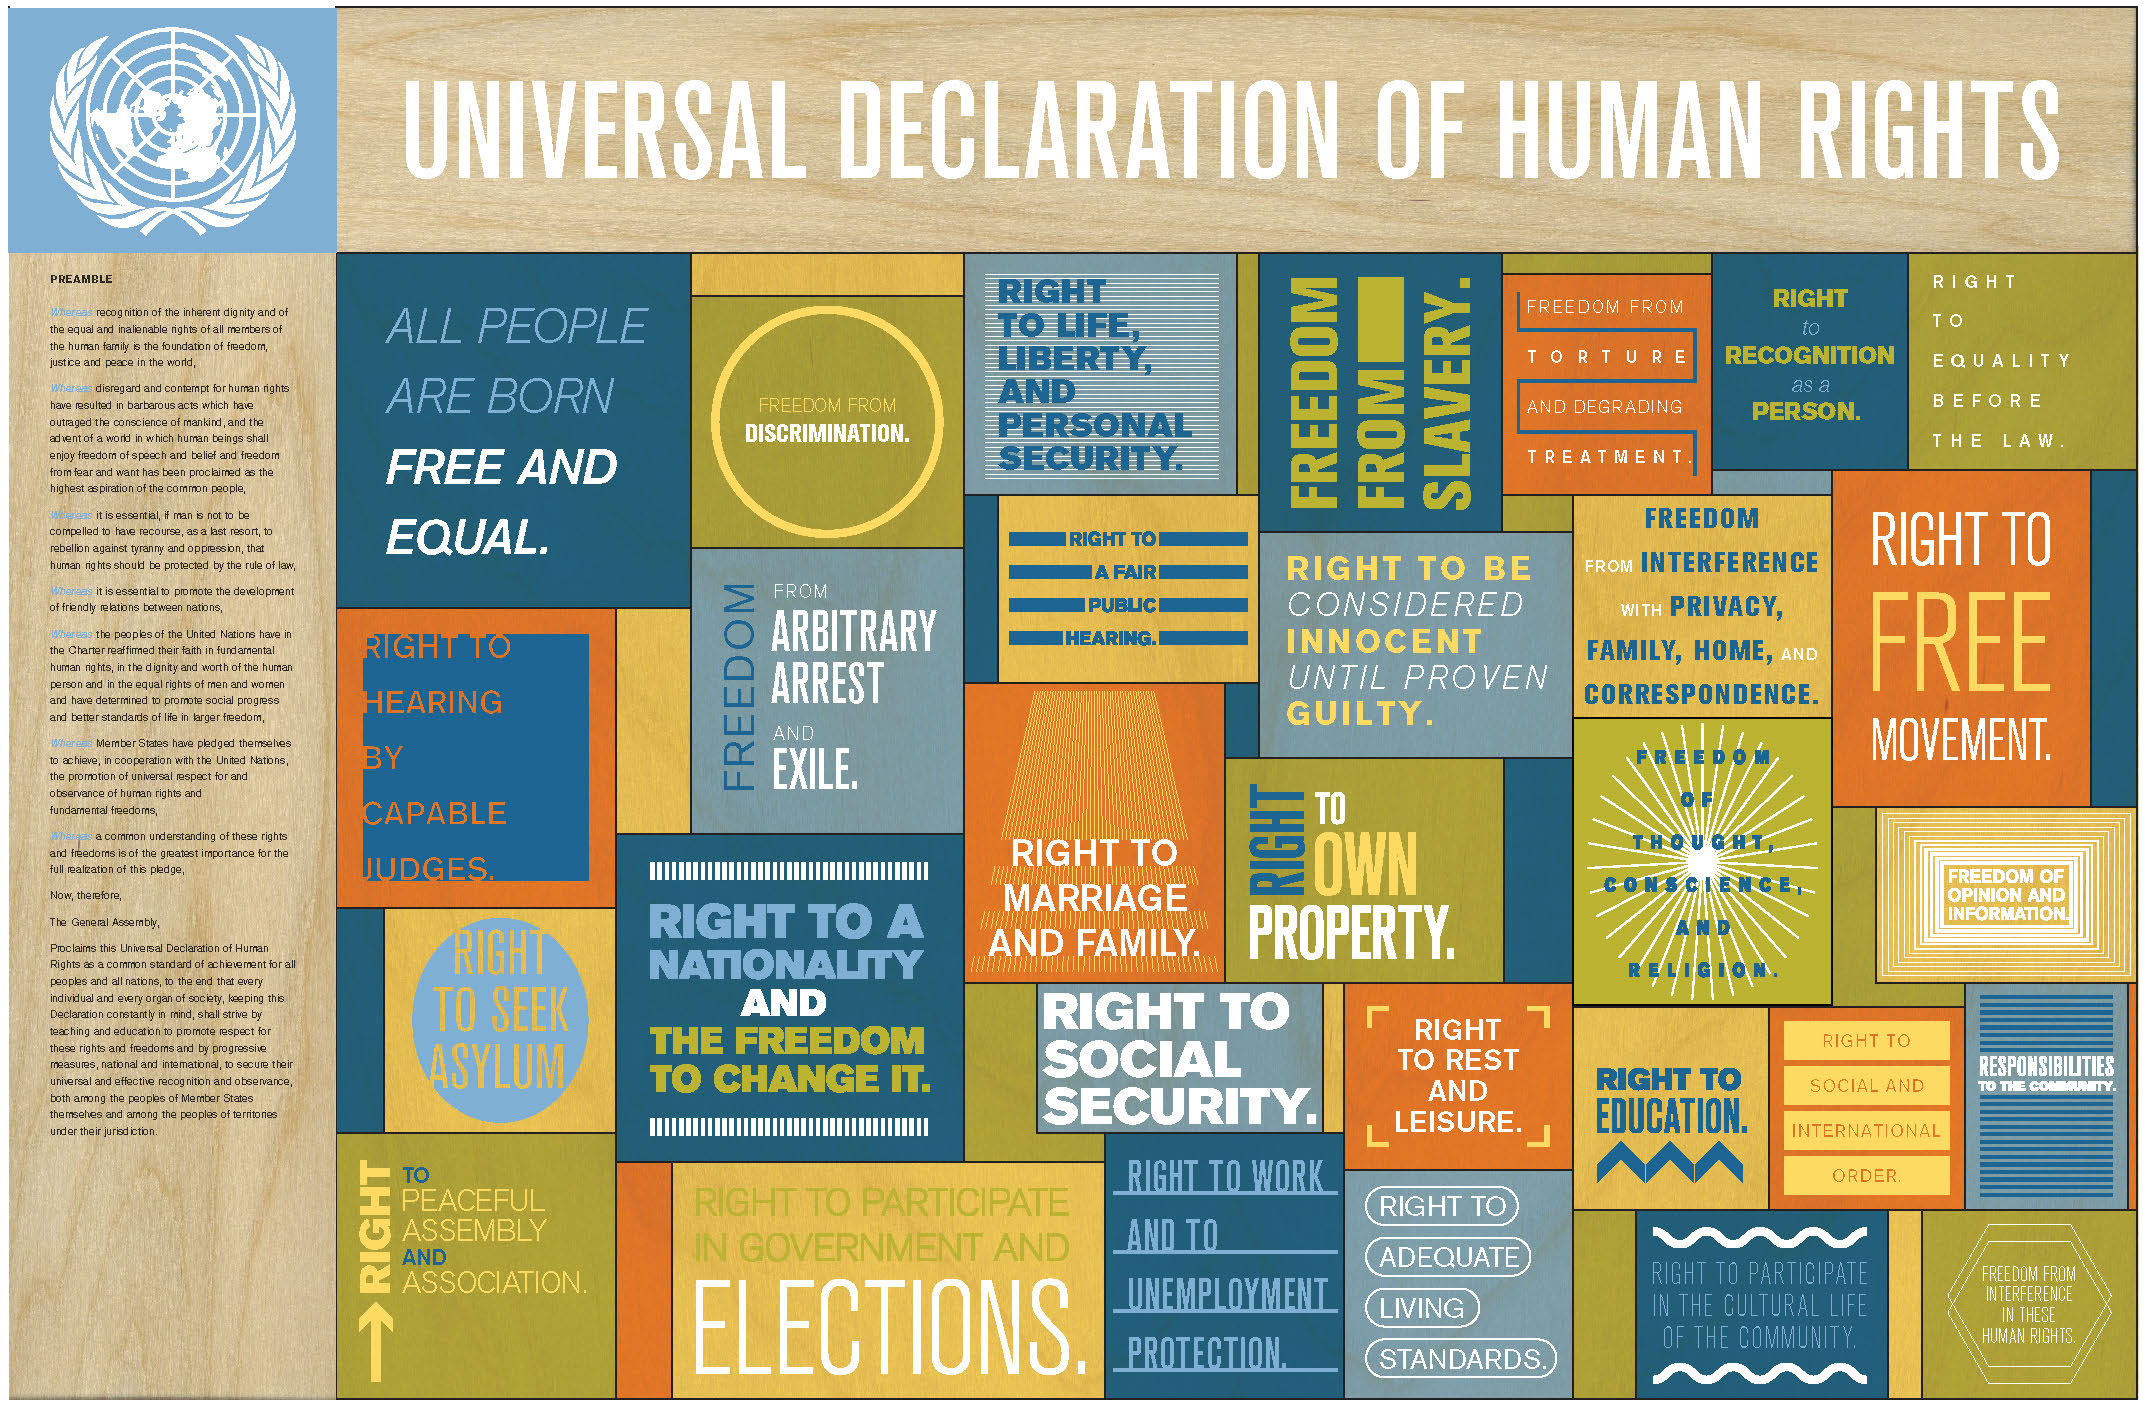 universal Declaration of Human Rights - Mock Up